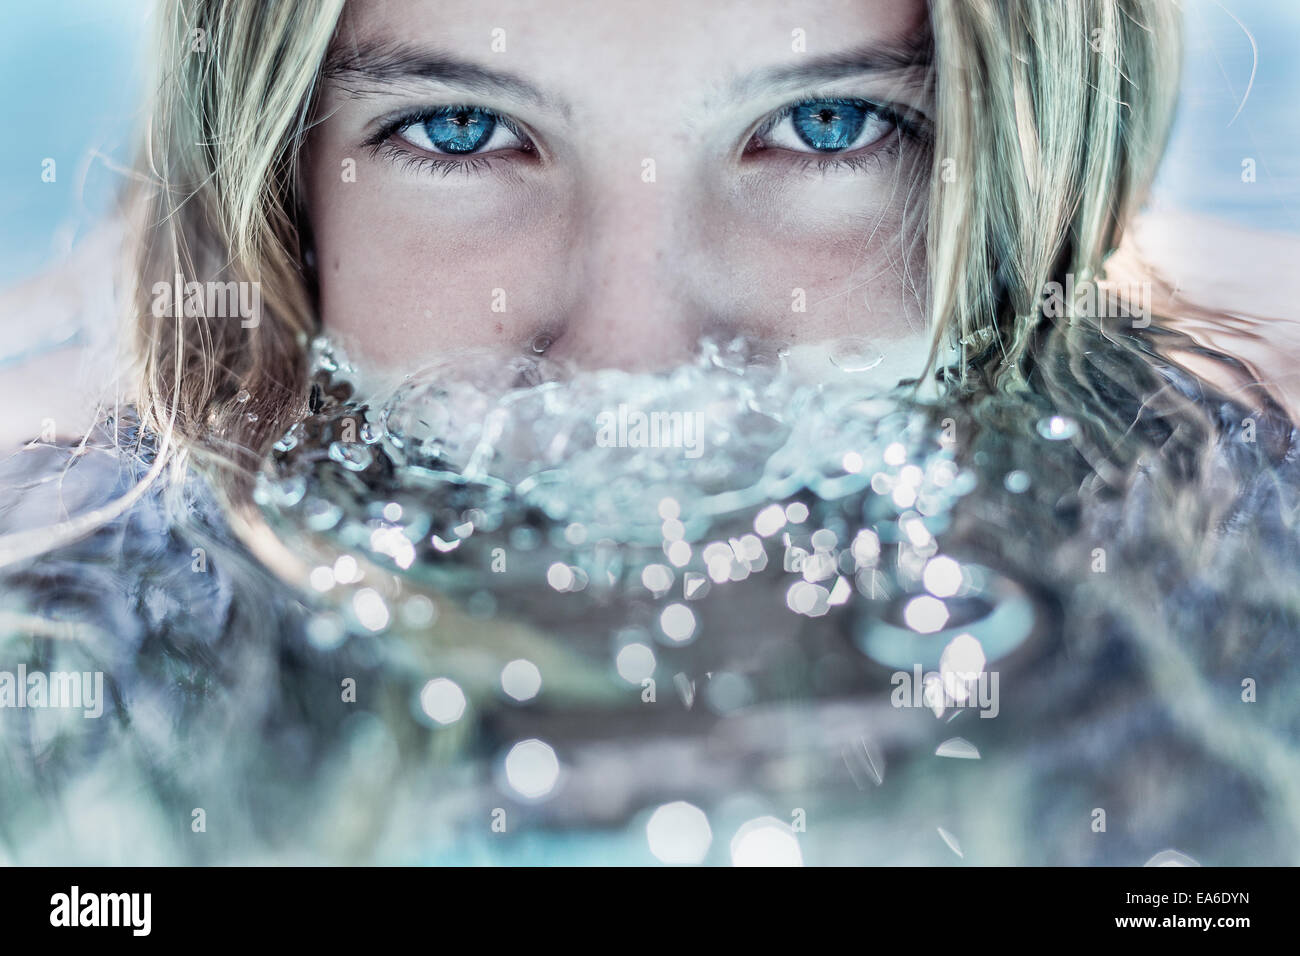 Girl with face partially submerged in water - Stock Image